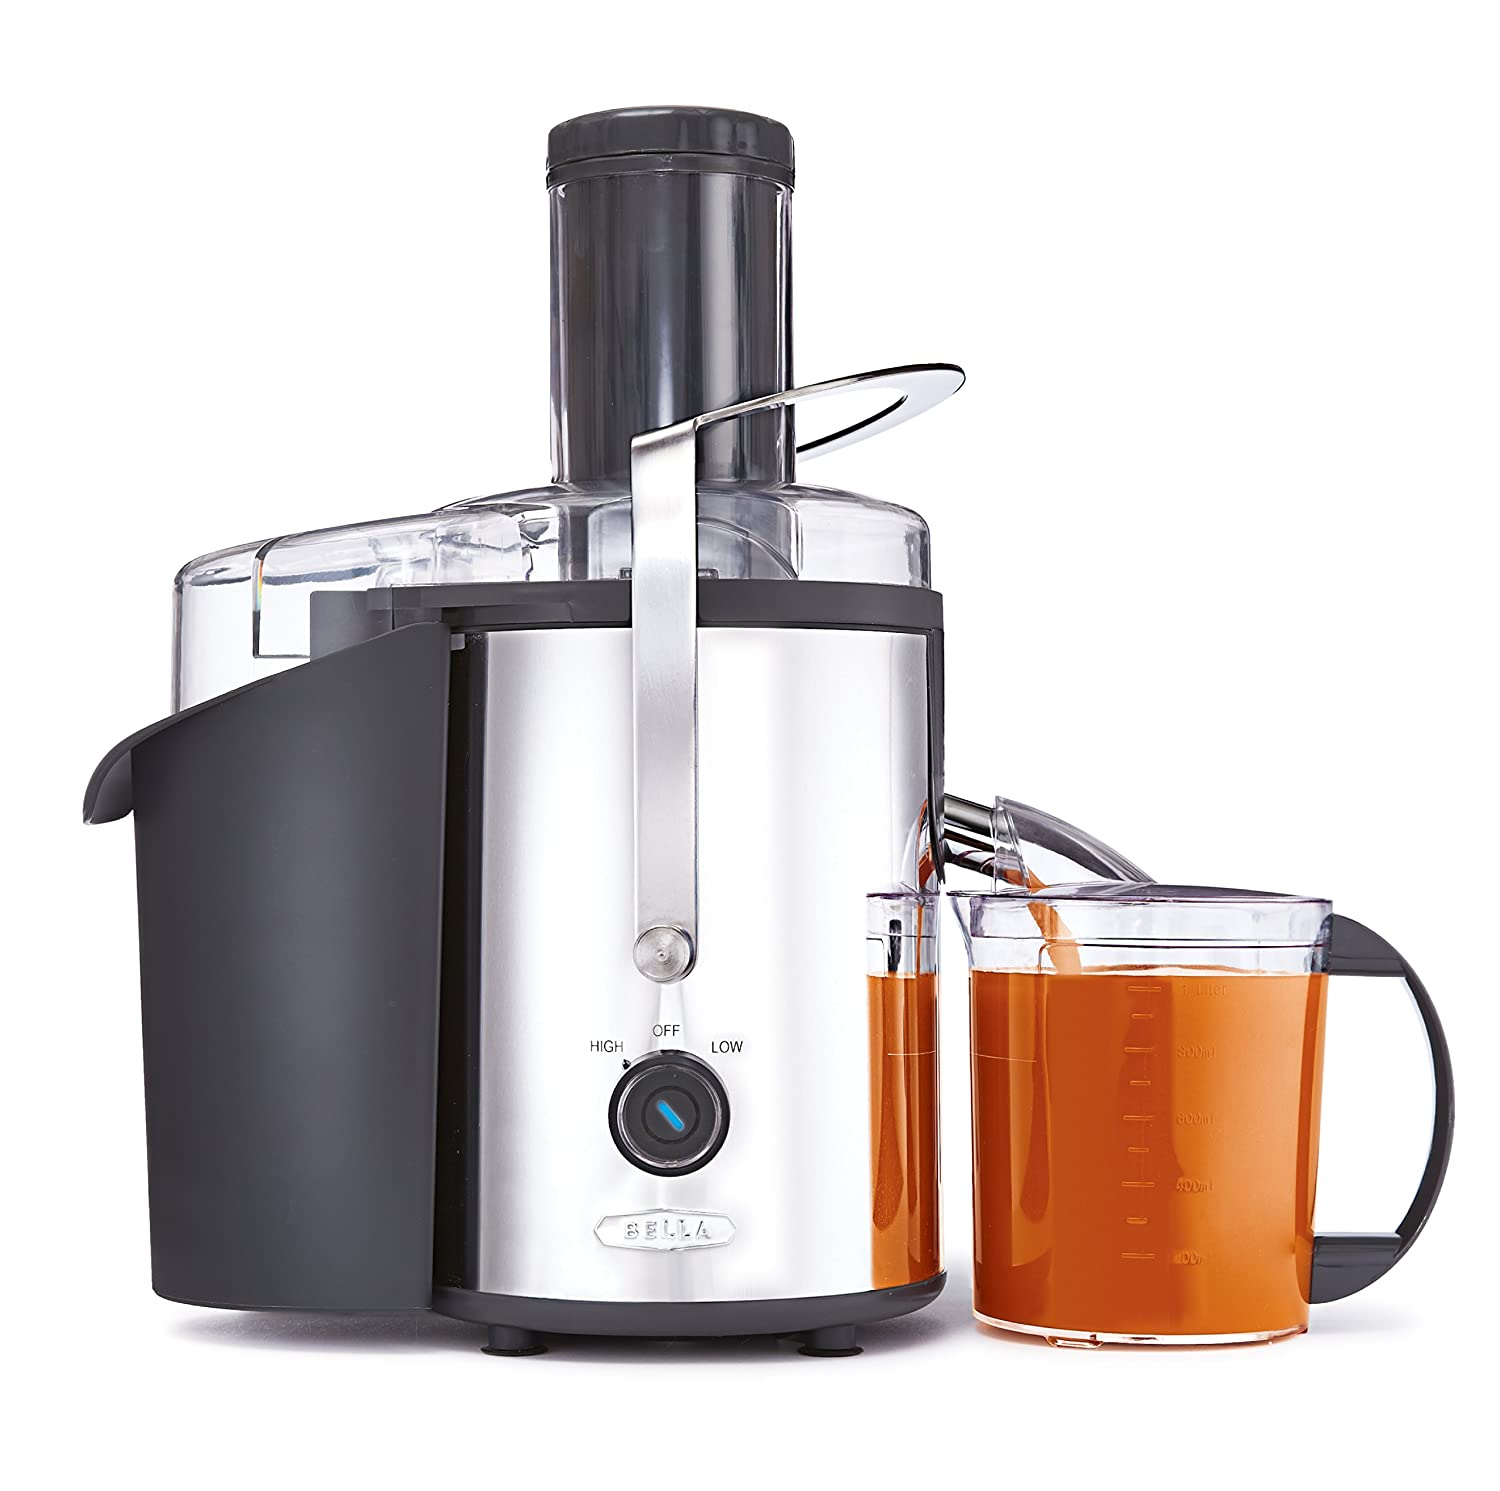 Manual juicer. Useful device for home 3